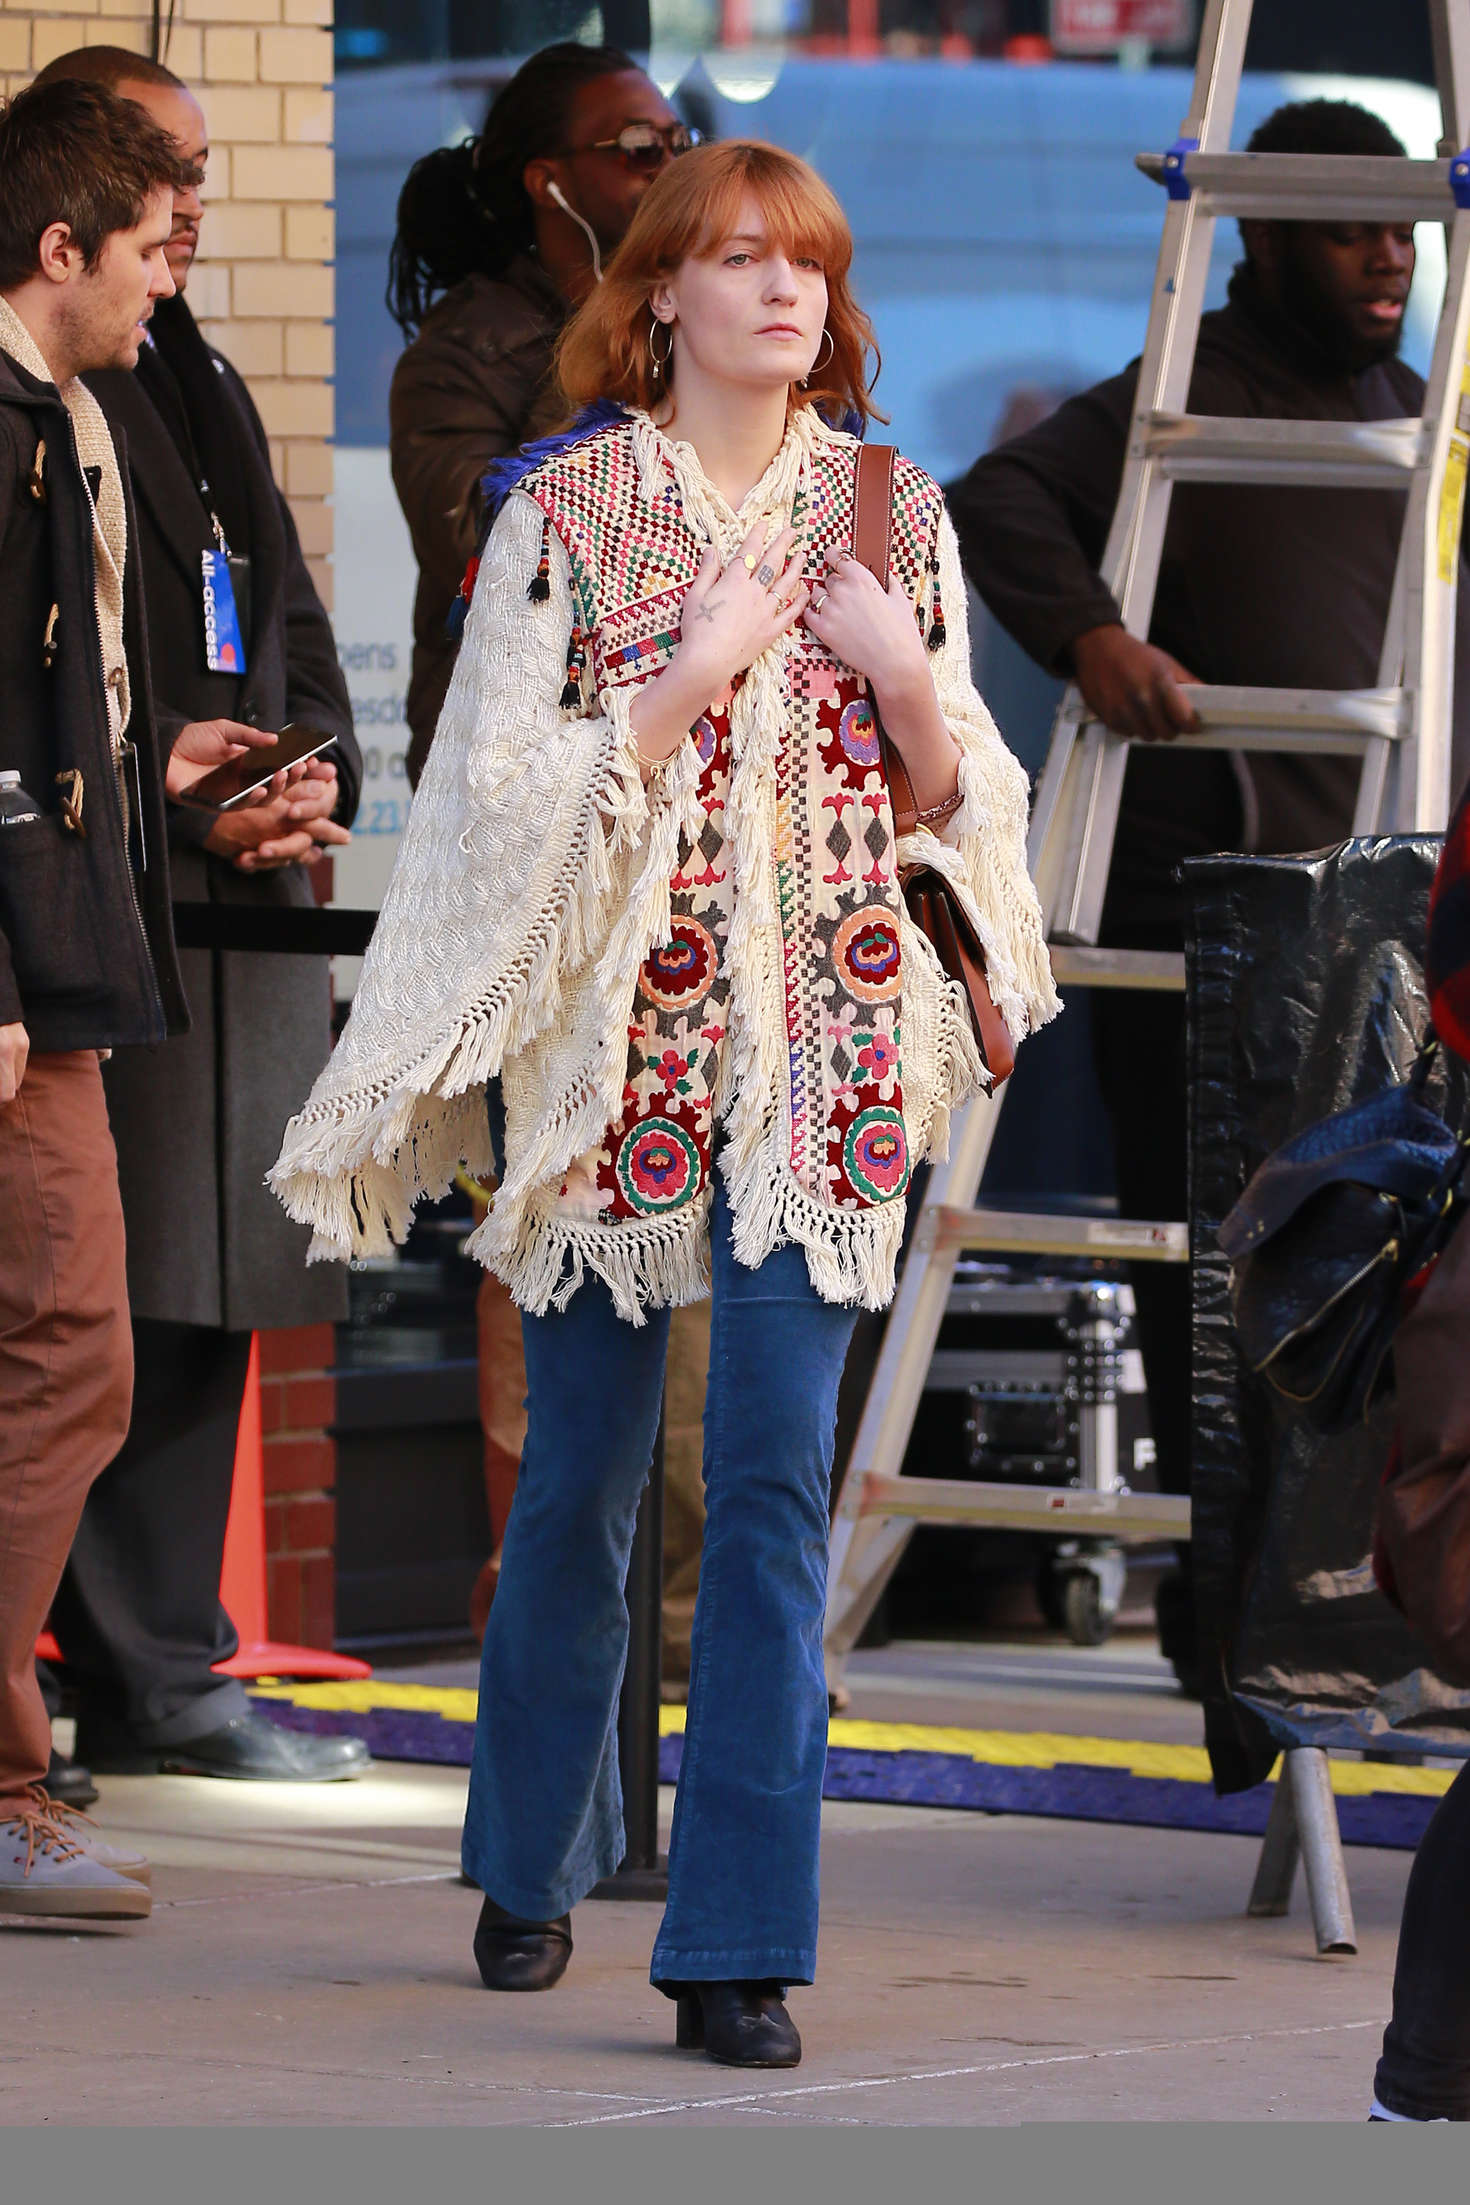 Florence Welch go out in New York City